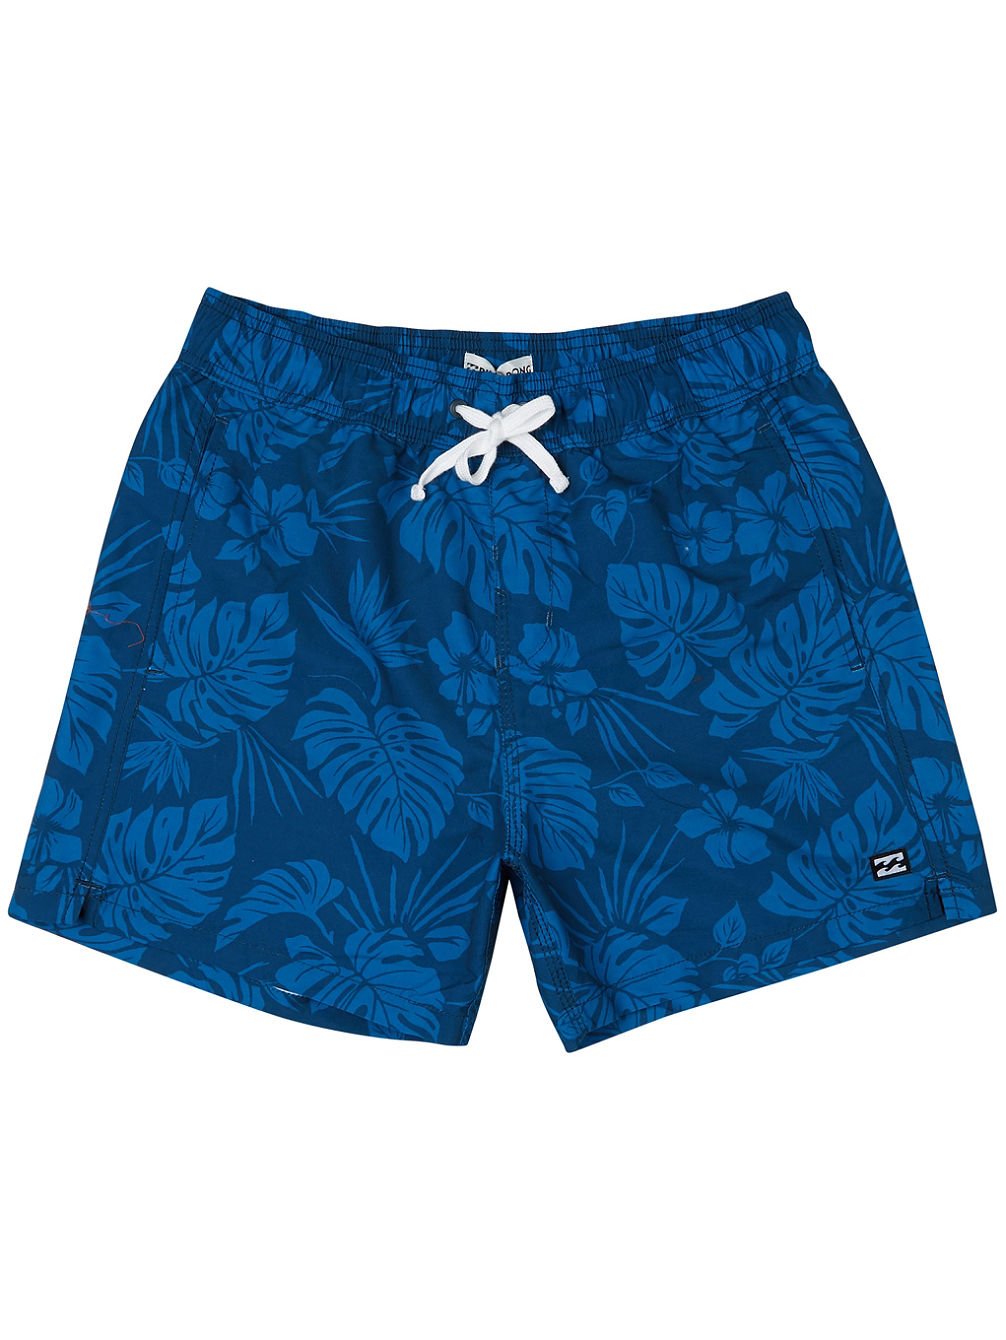 "All Day Floral Lb 16"" Boardshorts"